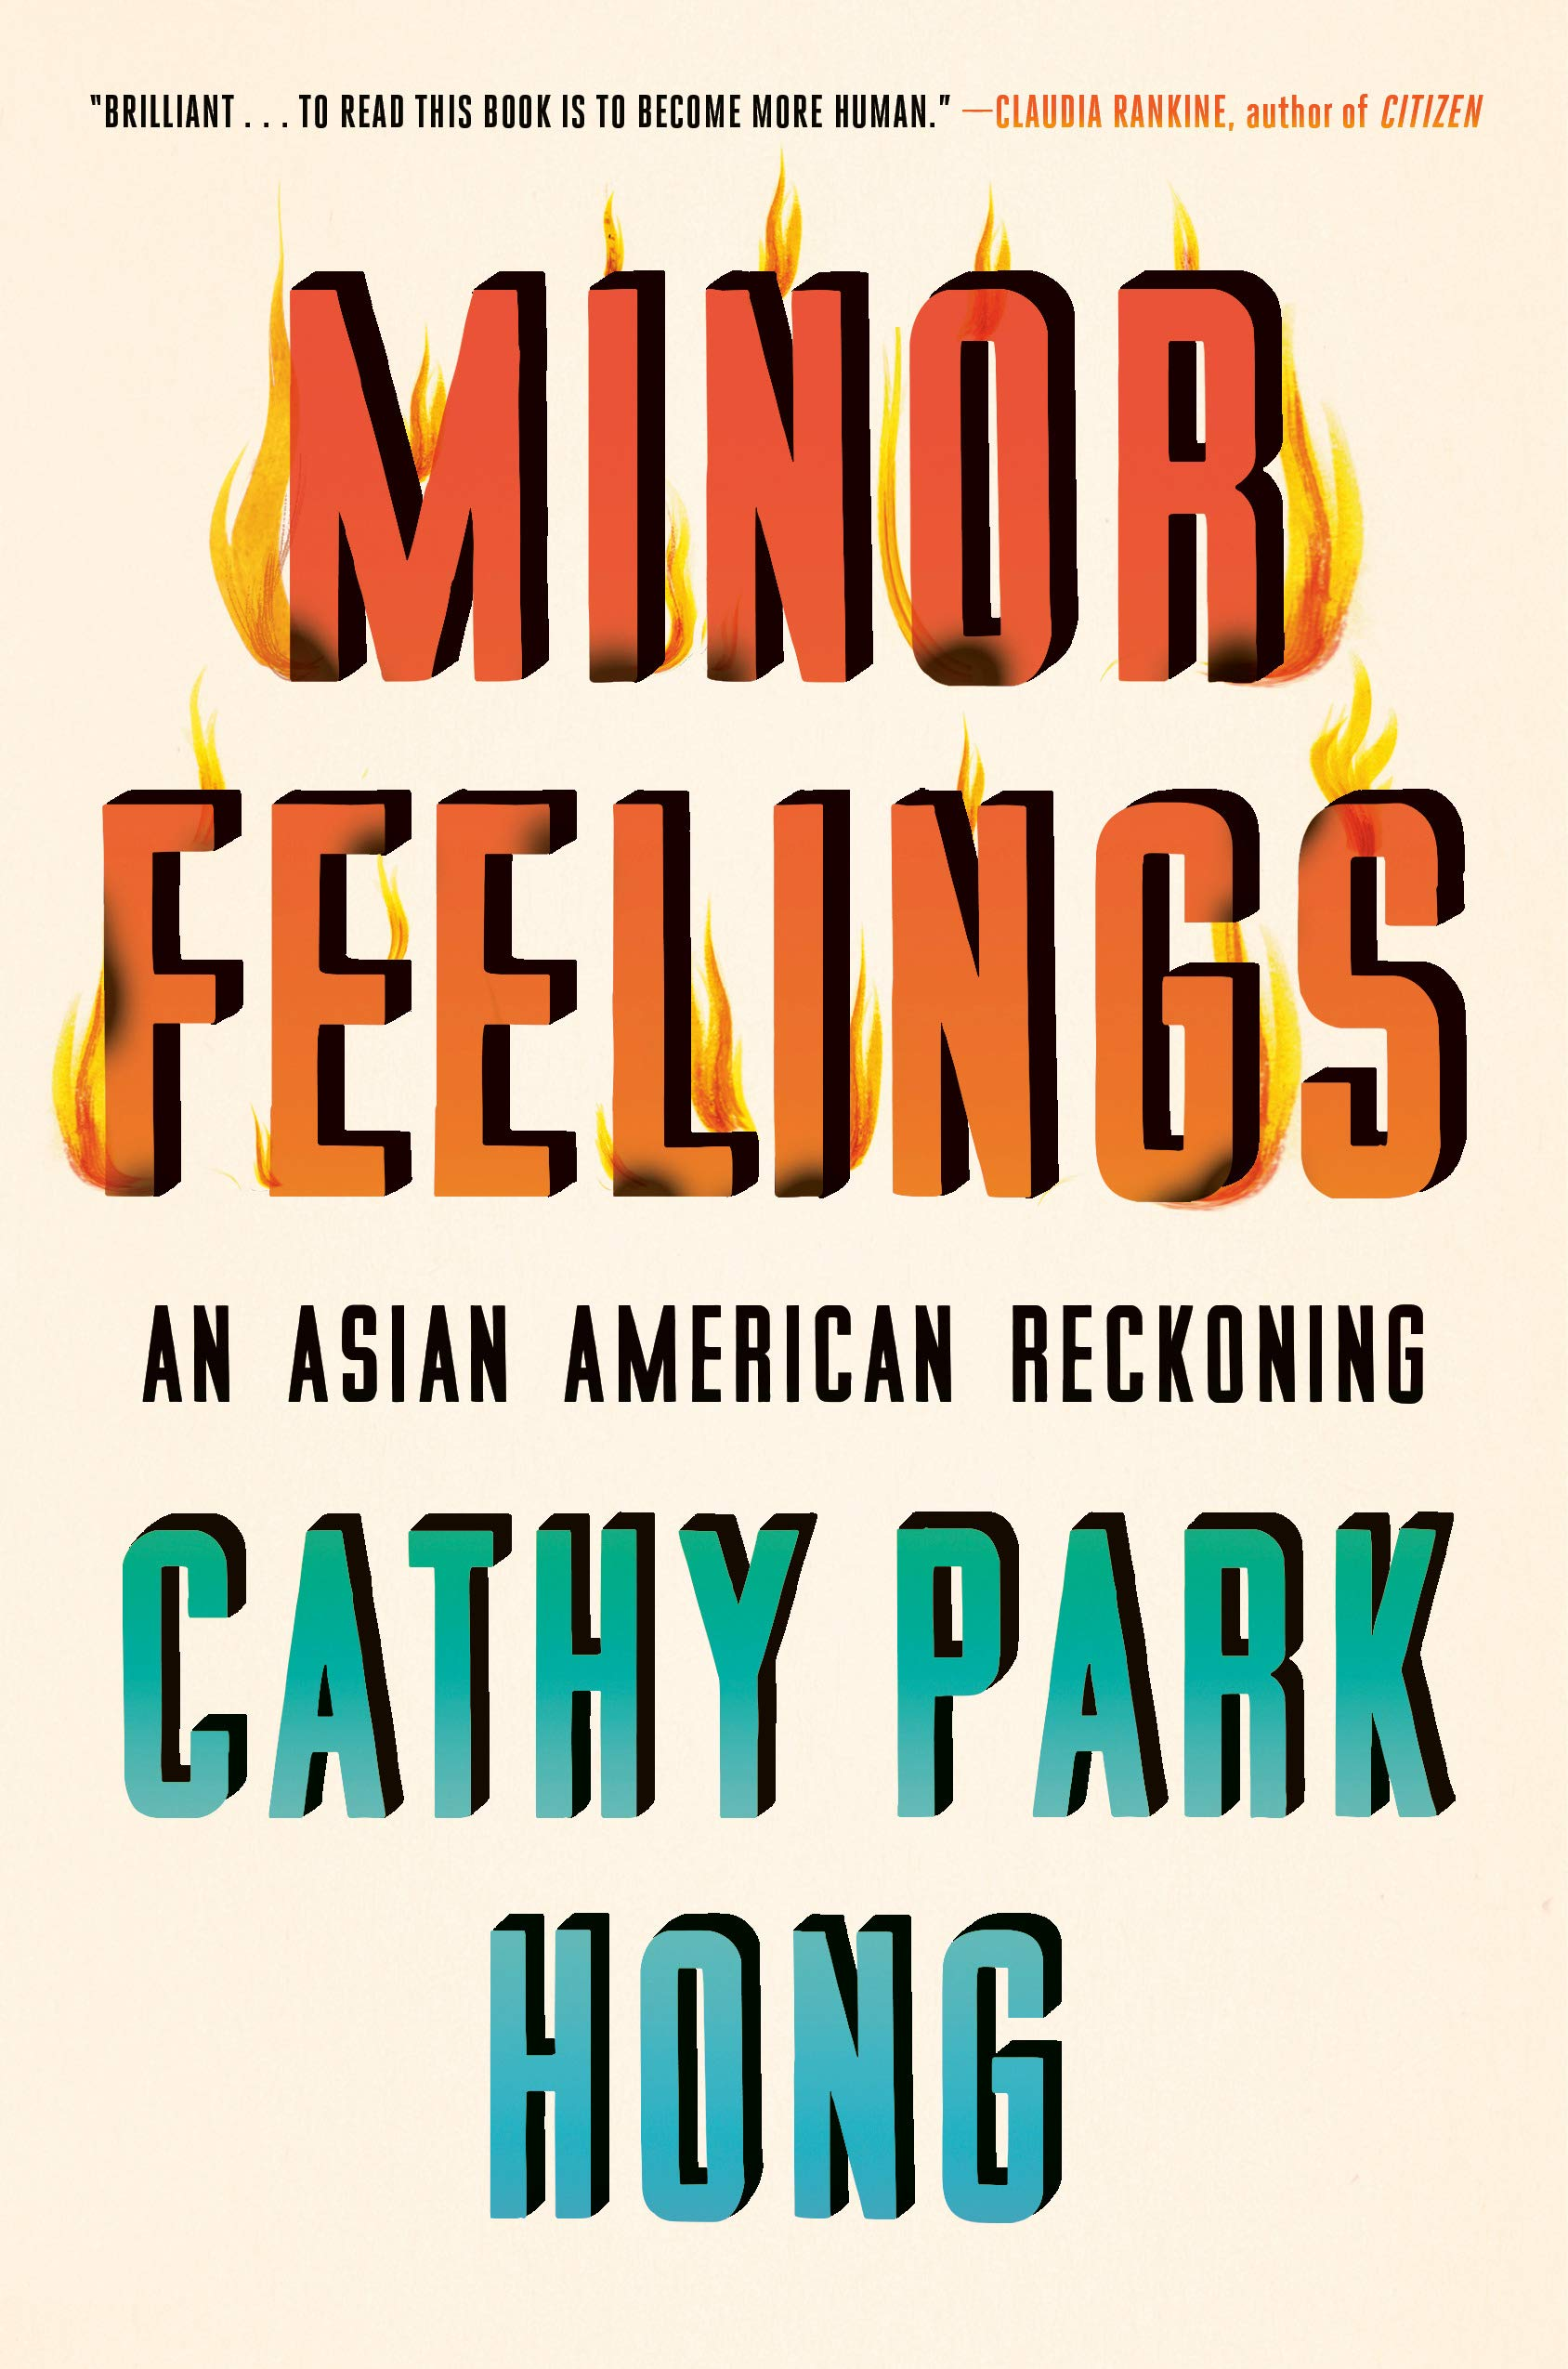 Amazon.com: Minor Feelings: An Asian American Reckoning ...